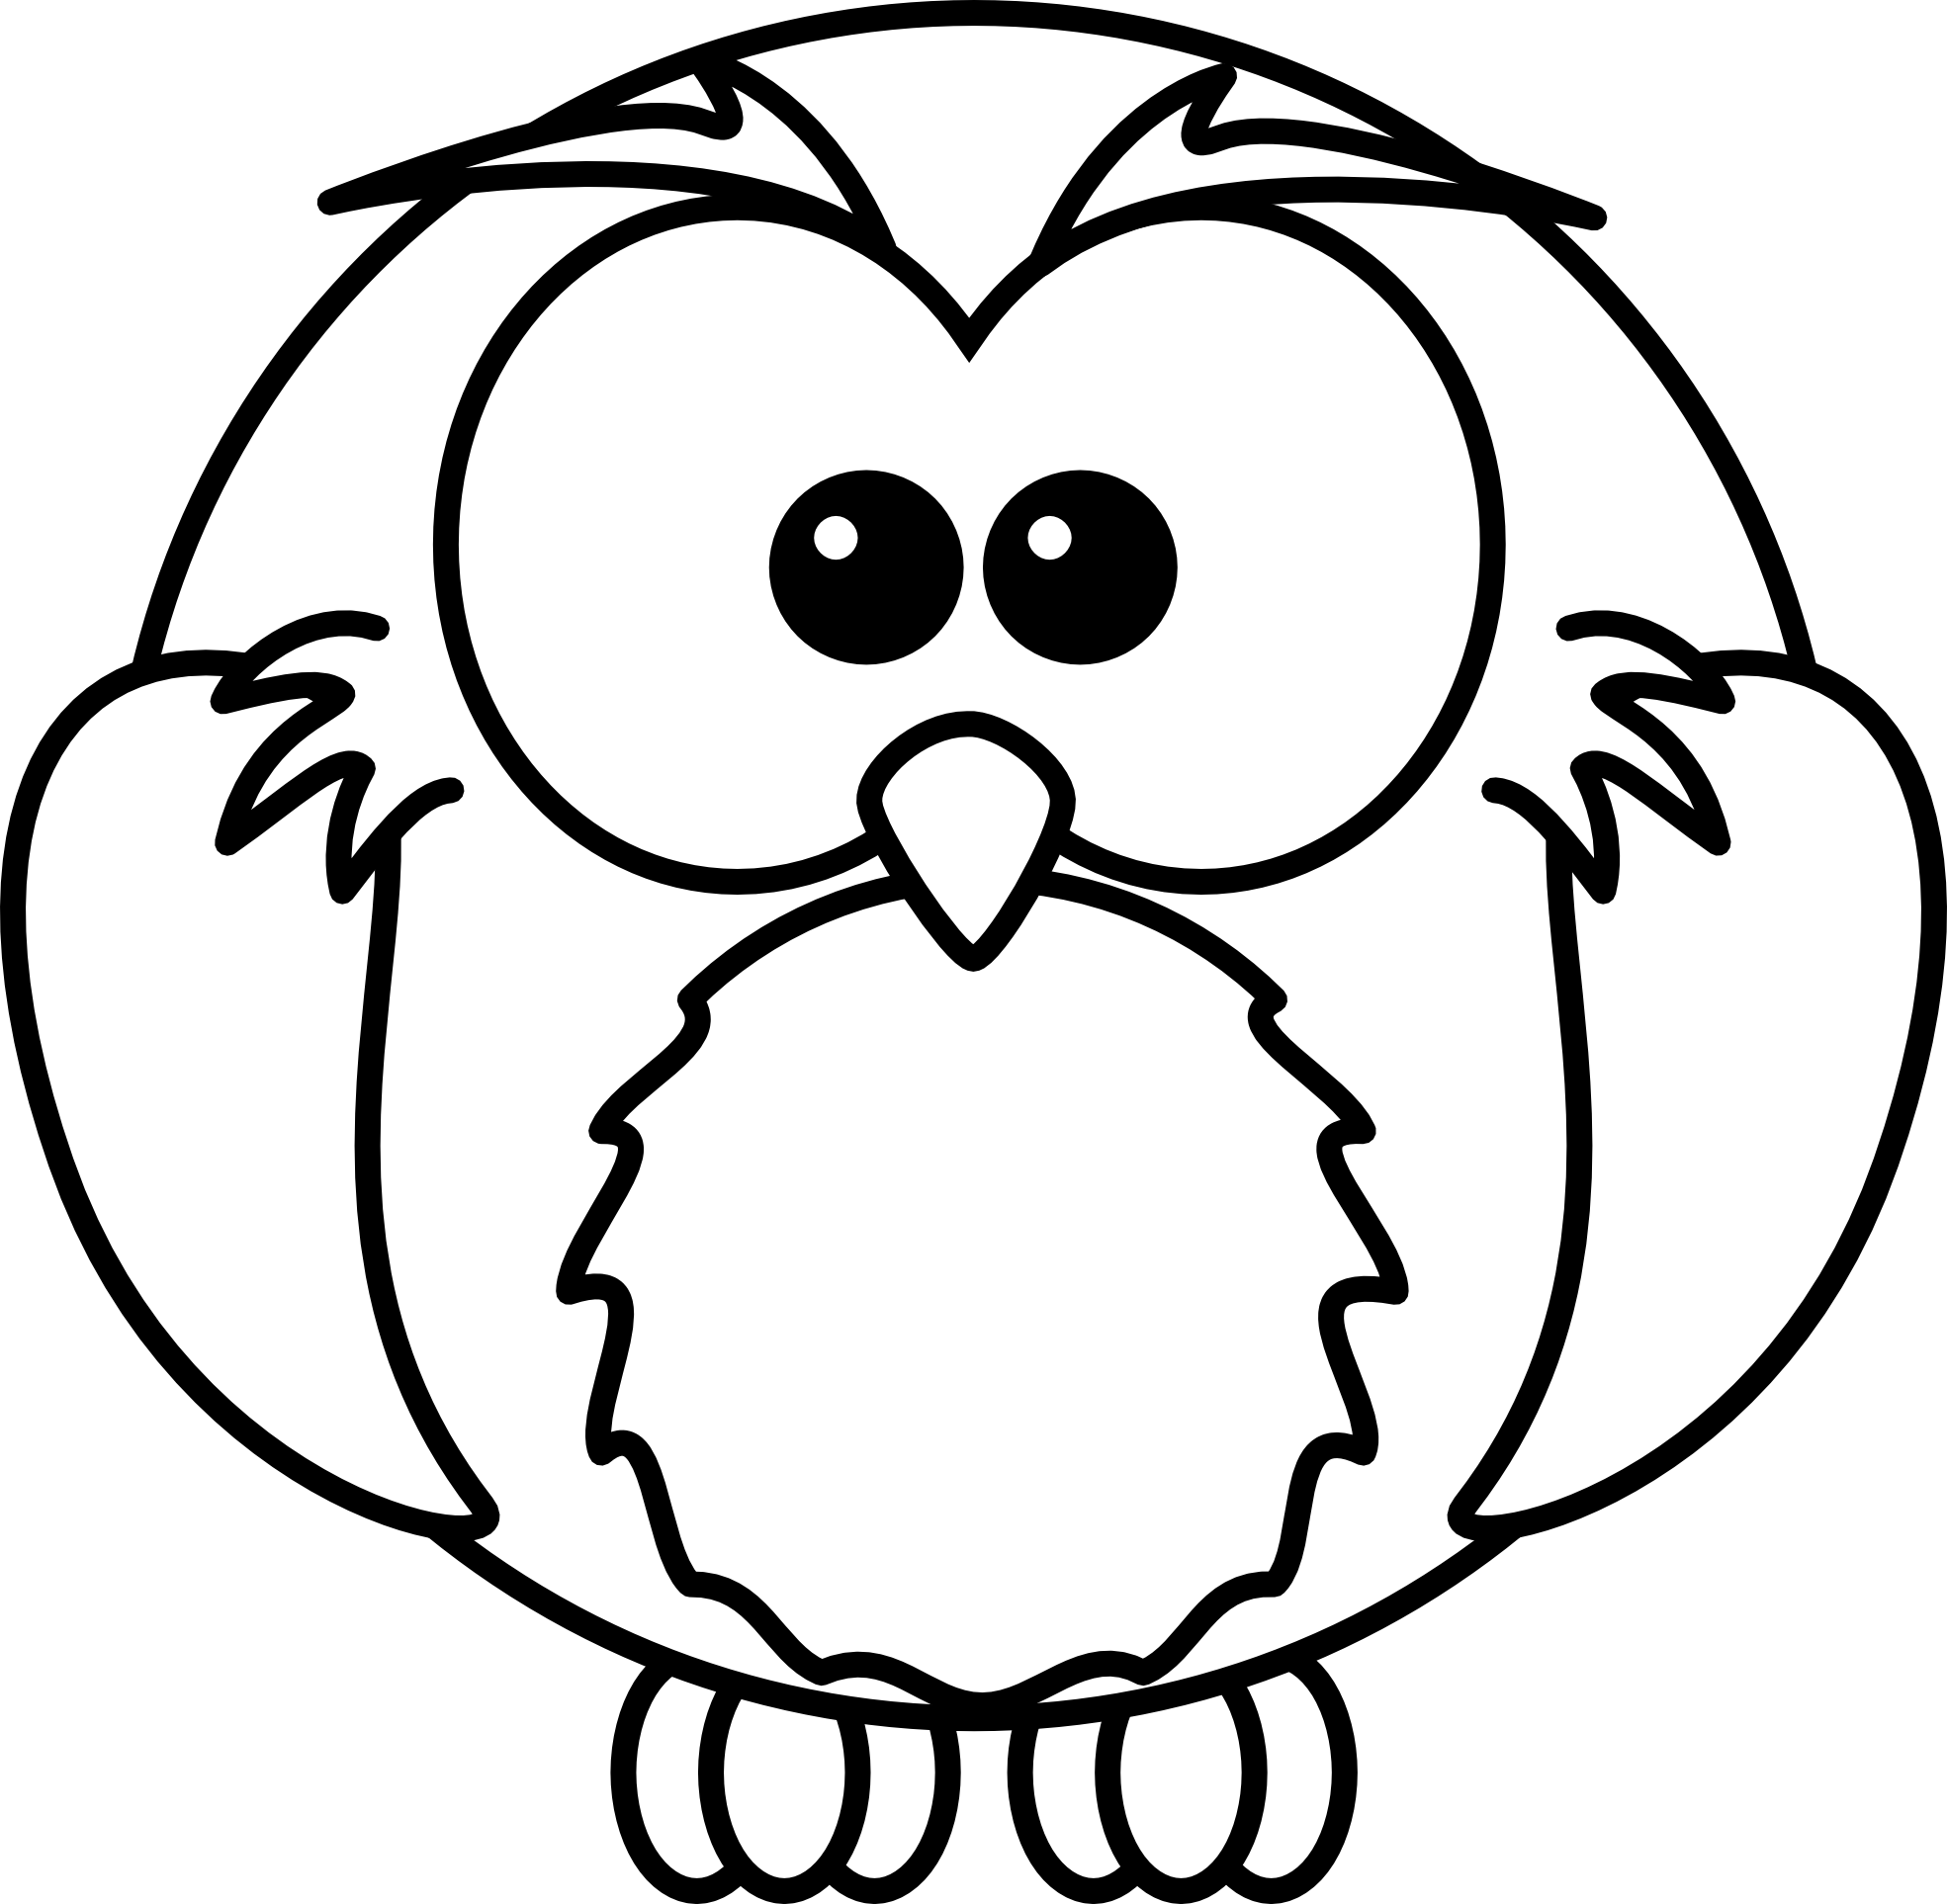 1969x1926 Black And White Owl Clip Art Many Interesting Cliparts